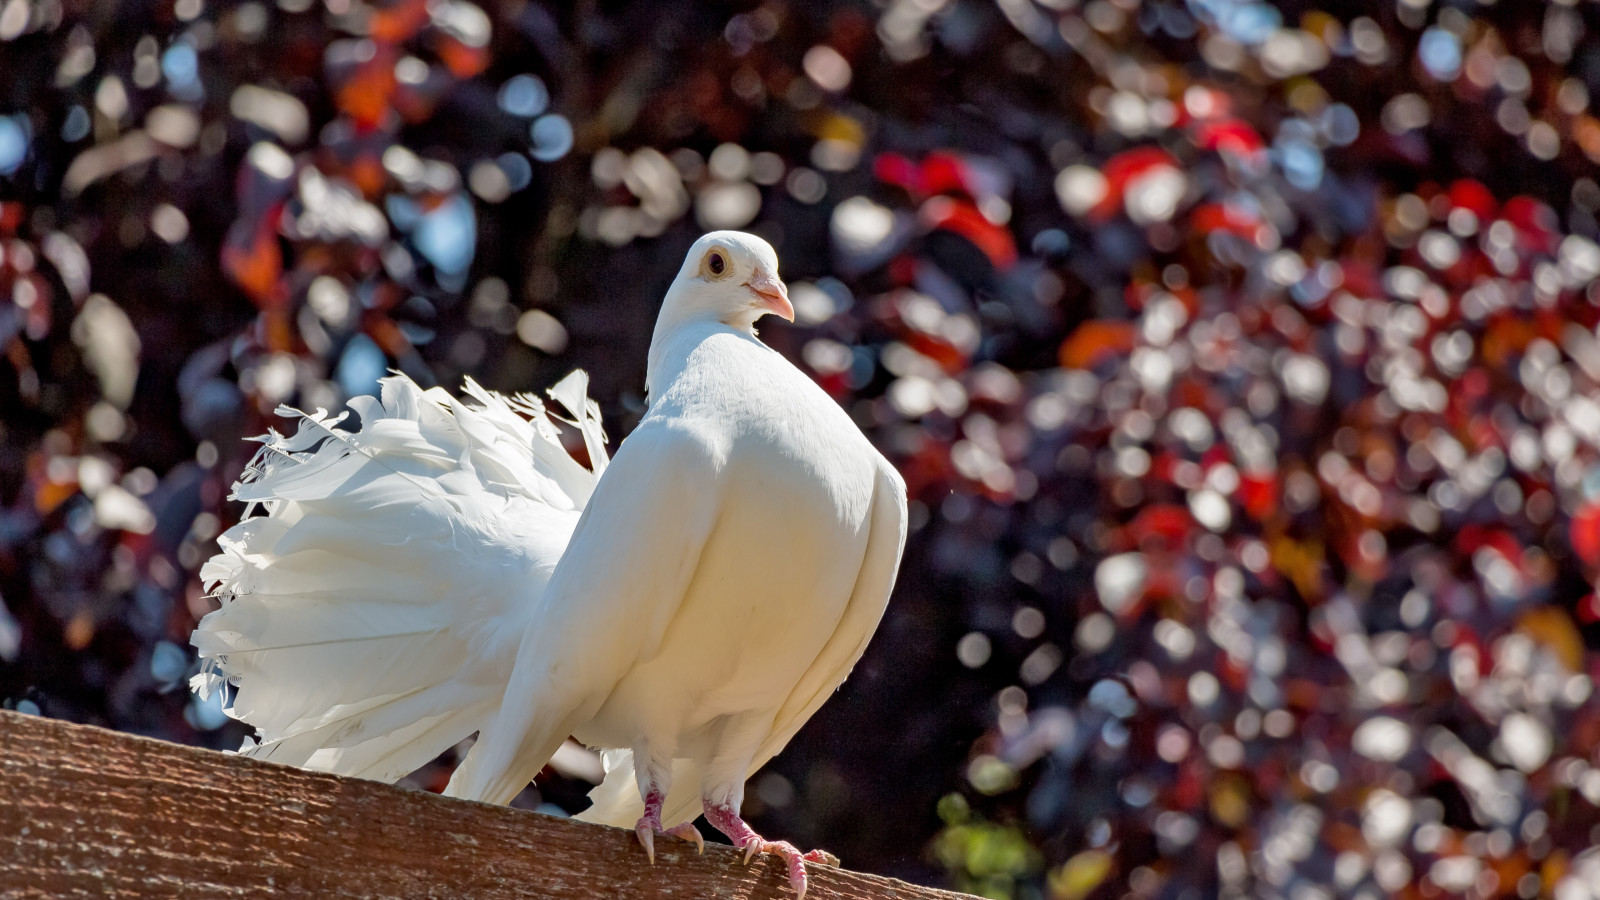 White pigeon wallpaper 1600x900